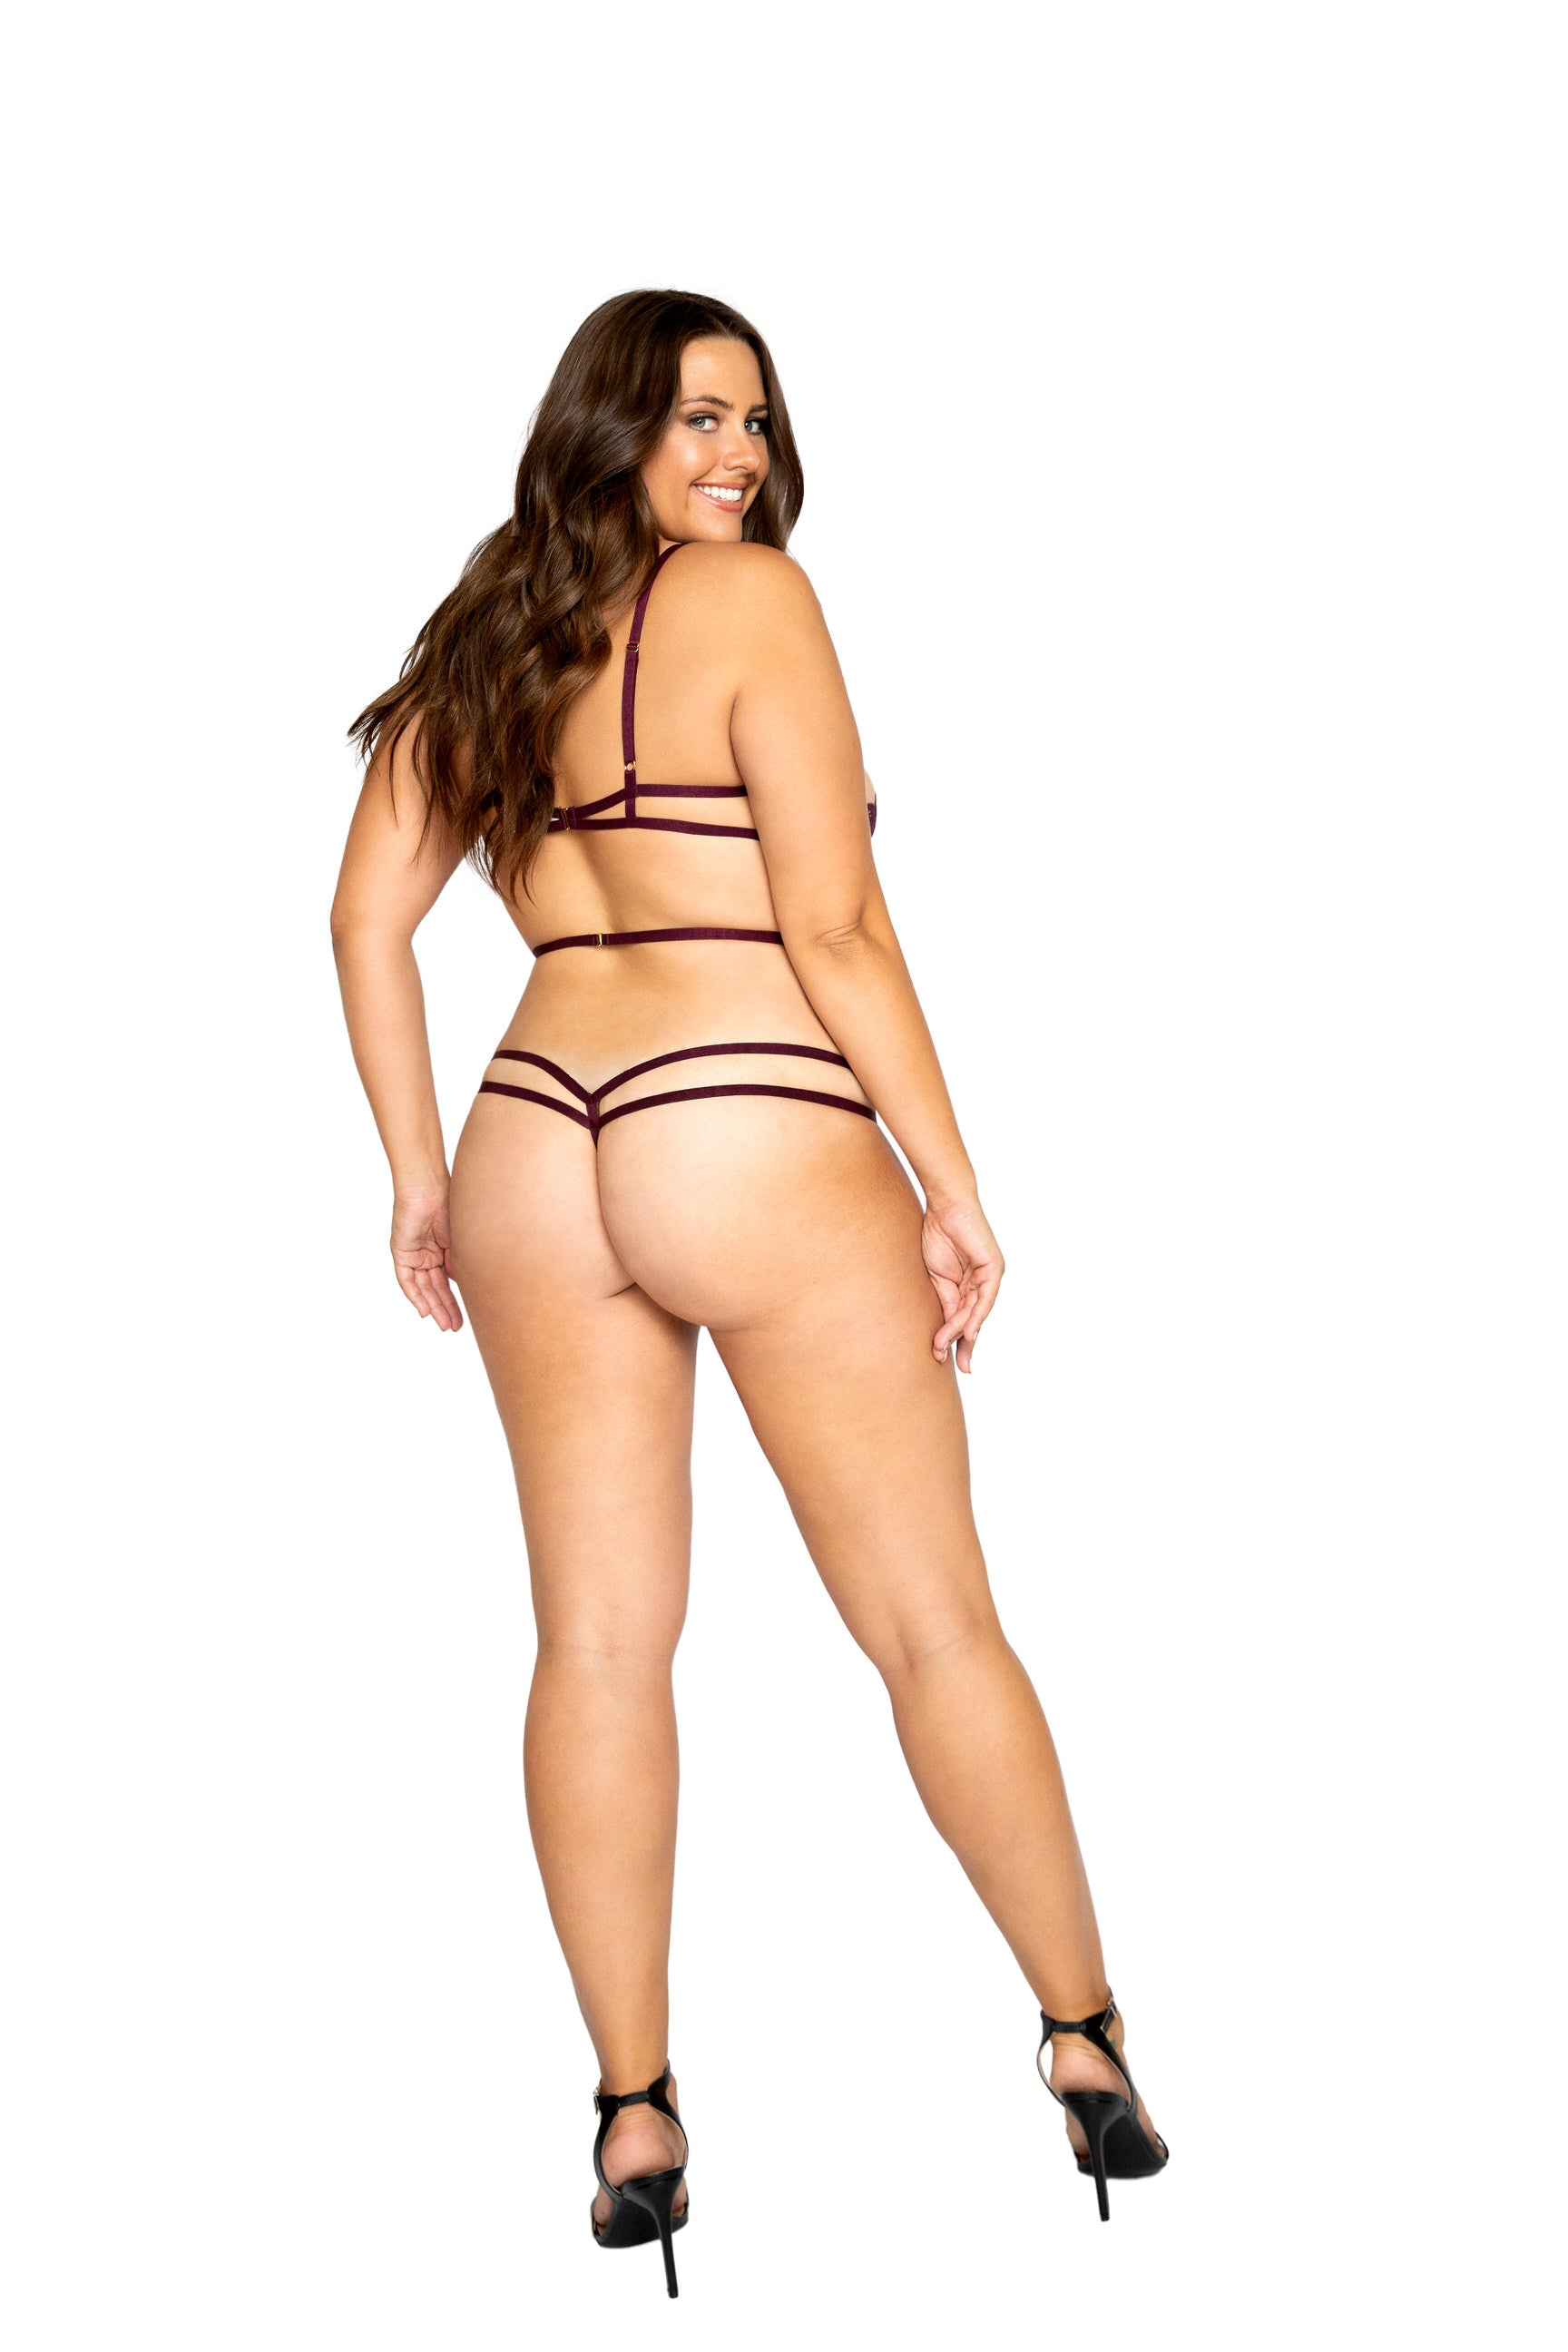 LI325 - Strappy Crotchless Teddy with Underwire Support